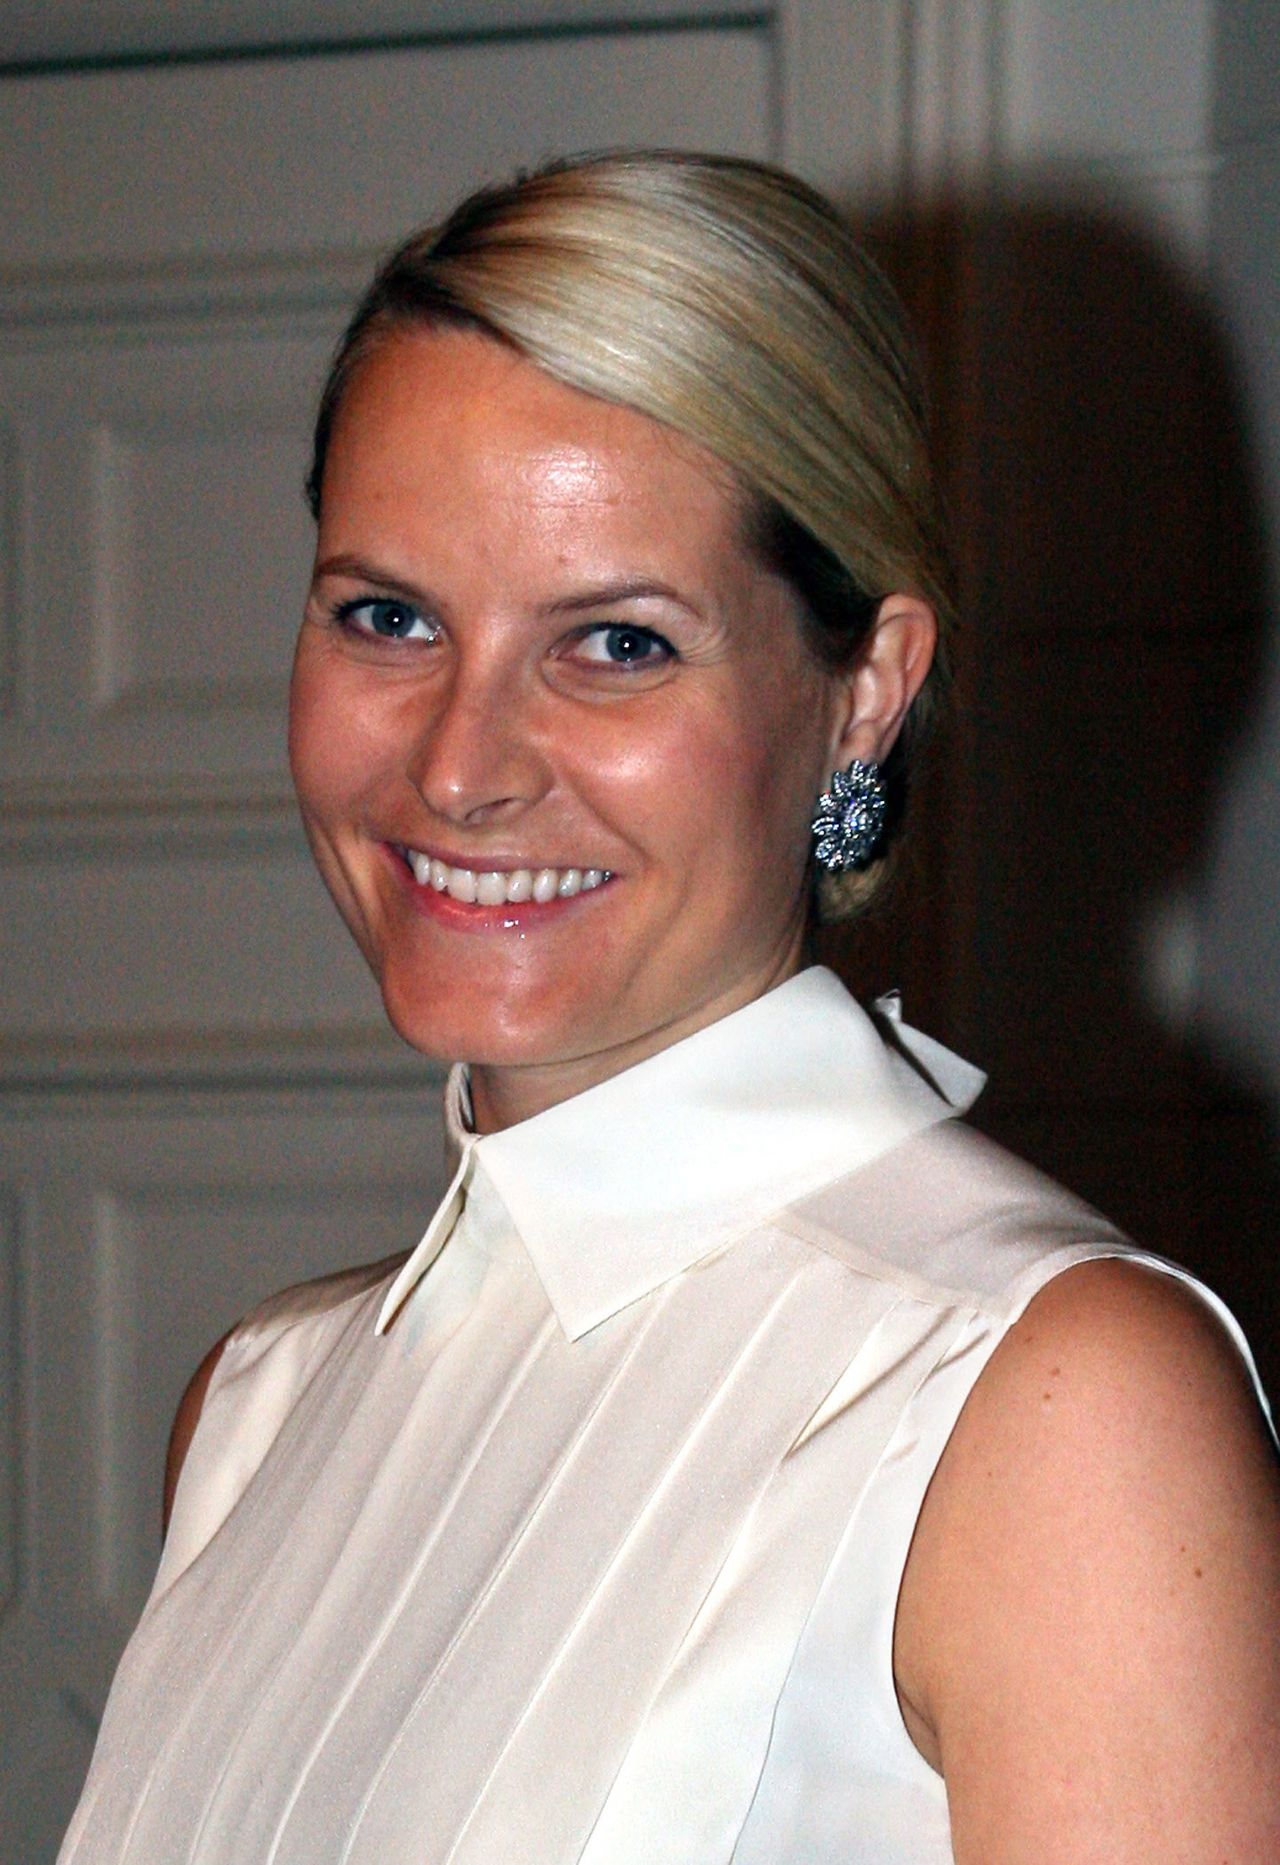 Norway's Crown Princess Mette-Marit arrives to attend a reception for the 100th anniversary of Norway's consulate 17 October 2006 in Hamburg. Mette-Marit is on a two-day-visit in Hamburg and will officially re-open the consulate on 18 October. AFP PHOTO DDP /DAVID HECKER GERMANY OUT